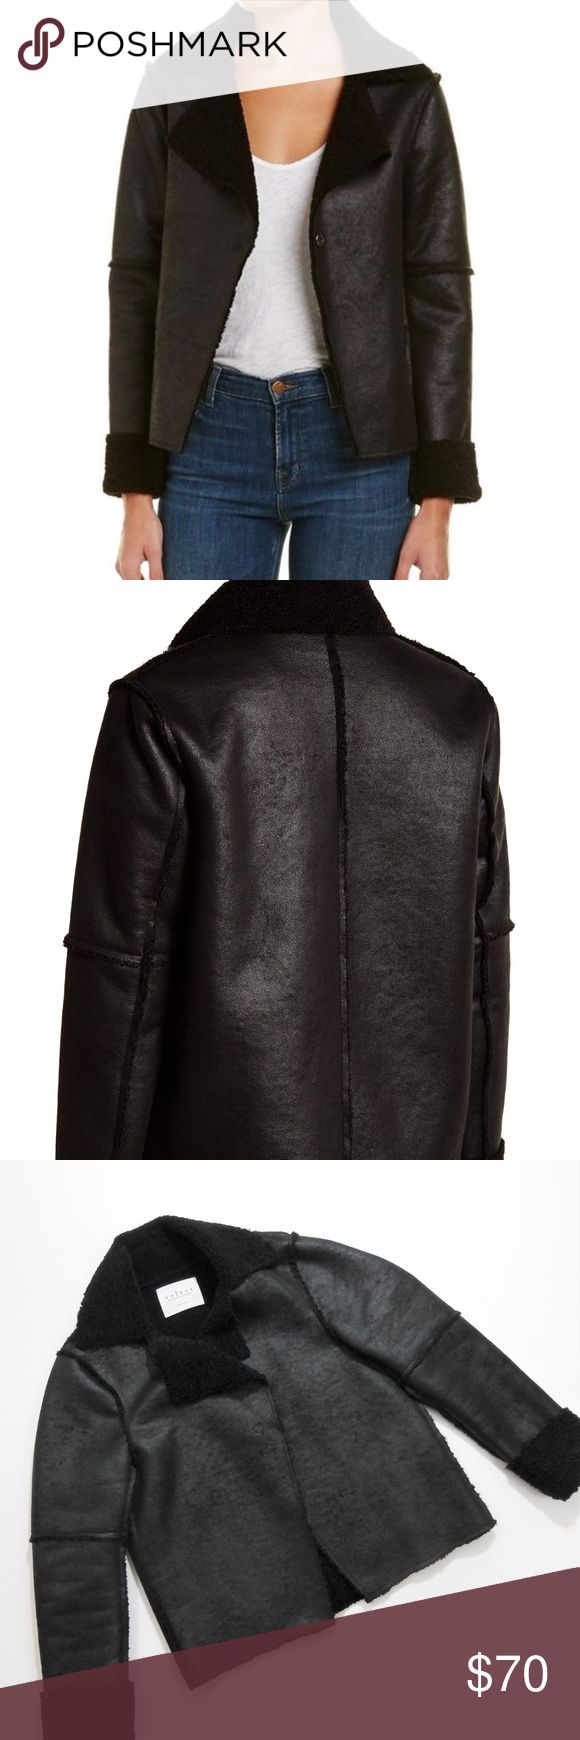 """Velvet by Graham & Spencer Shearling Jacket Velvet by Graham & Spencer Faux Suede Shearling Lined Jacket  Details:  - Color: Onyx - Notch lapel - Long sleeves - Concealed front snap button closure - Faux suede construction - Faux shearling lining - Imported - Faux suede/Faux shearling lining: 100% polyester - Approx. 23"""" length, 38.5"""" bust laid flat  Worn once. Looks new! I also still have the tags which came attached with a safety pin and can therefore be easily reattached! Velvet by Graham…"""